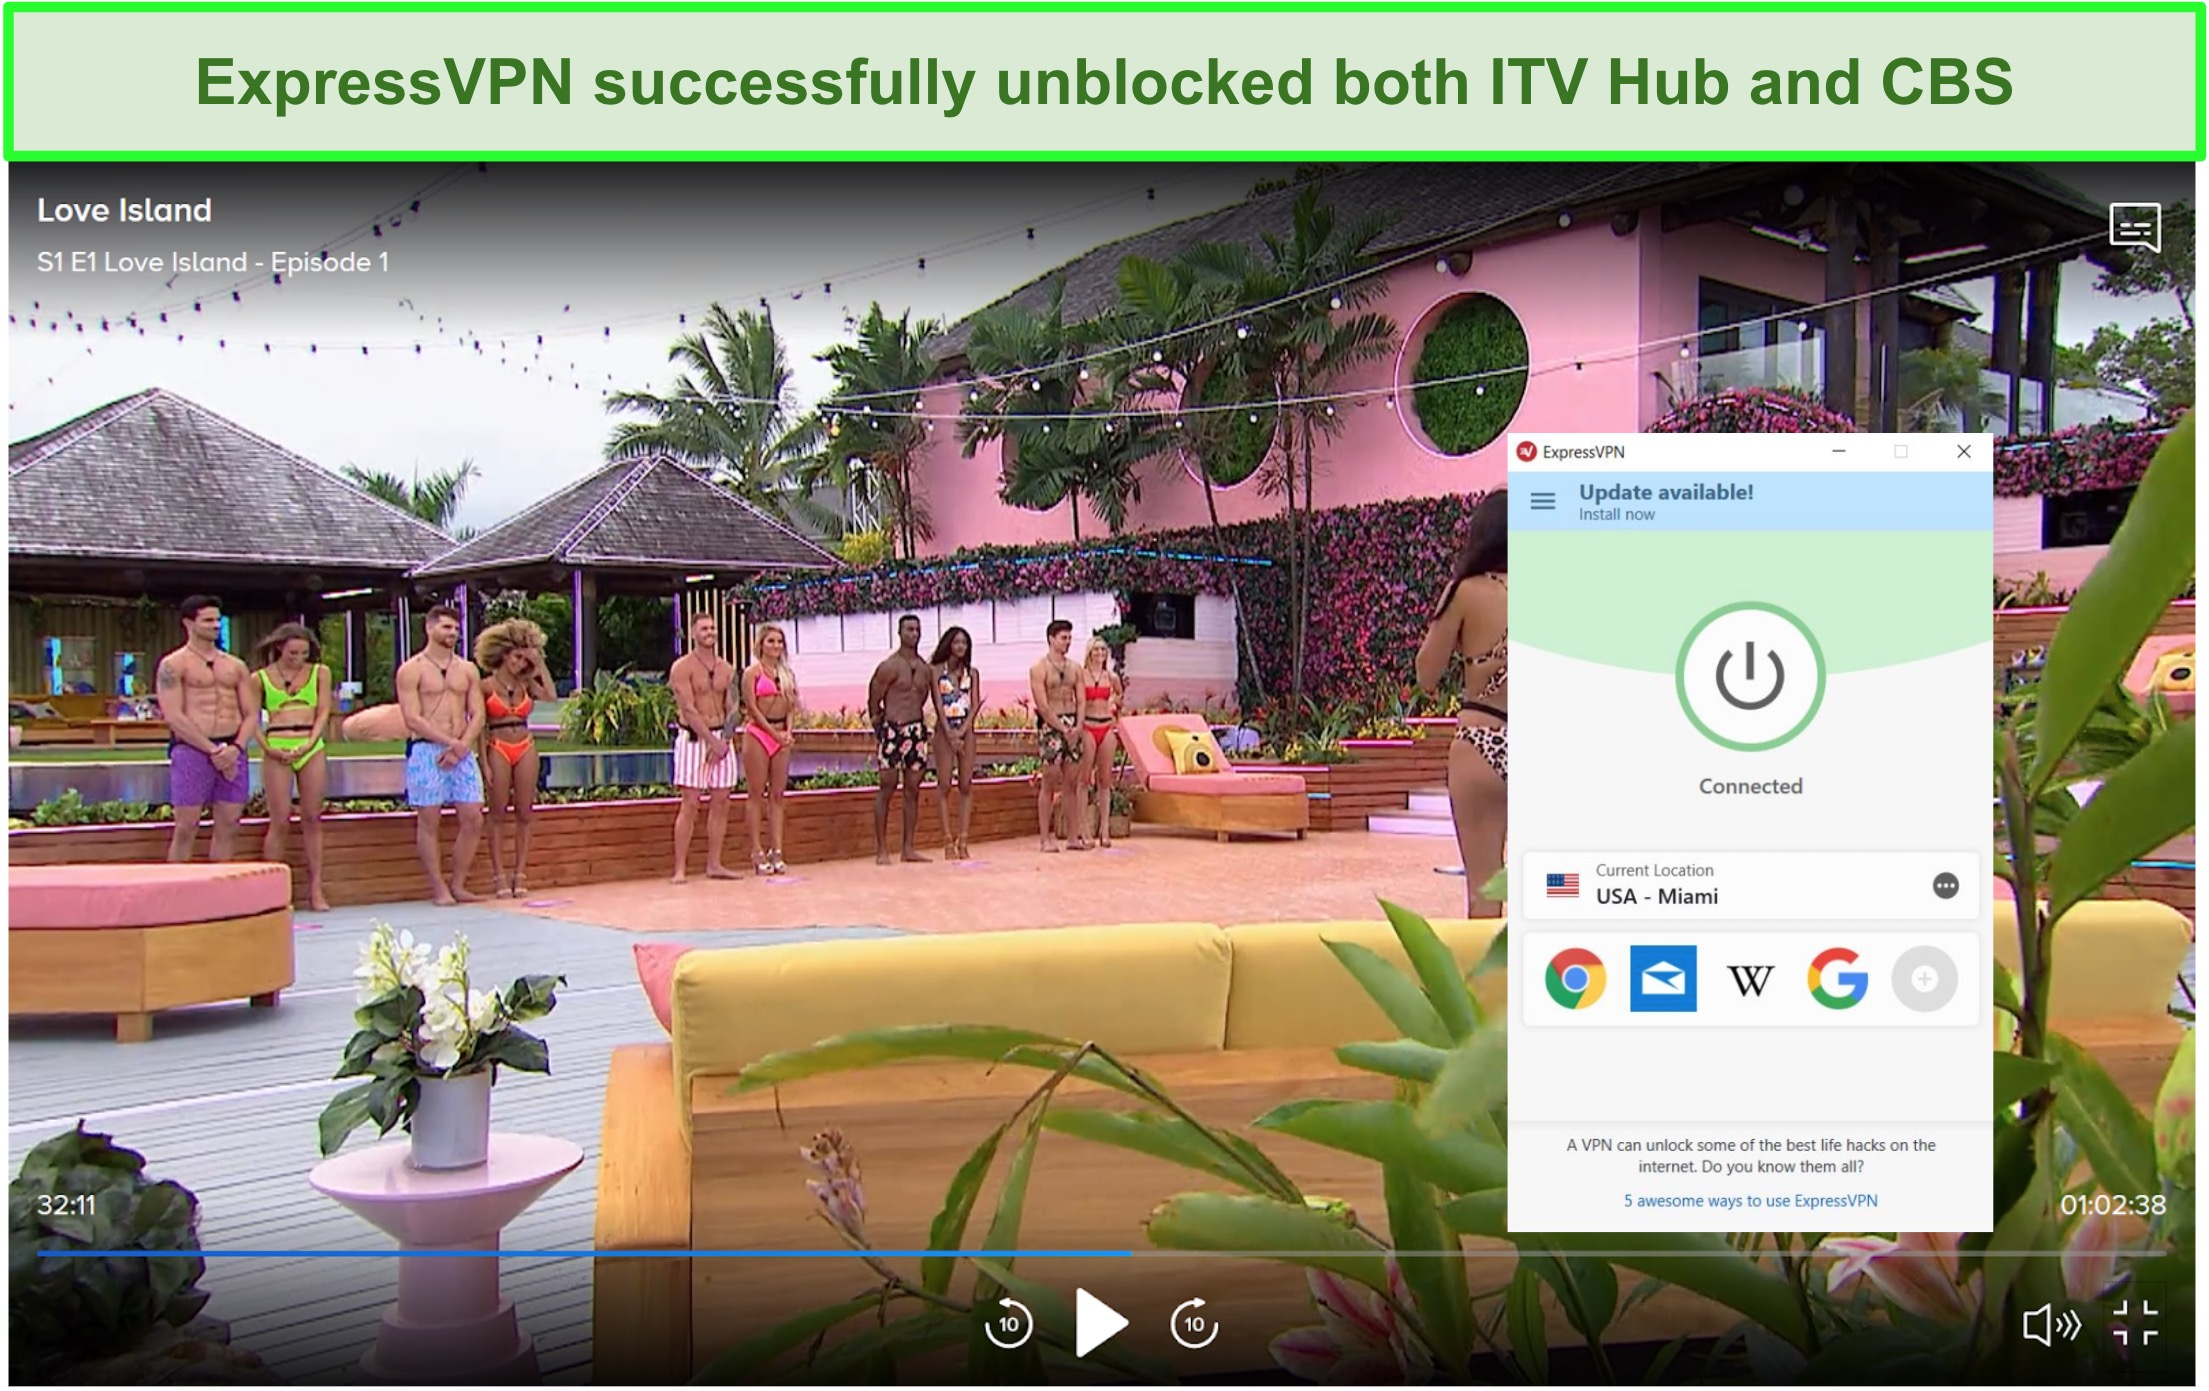 Screenshot of ExpressVPN successfully unblocking Love Island episode on CBS